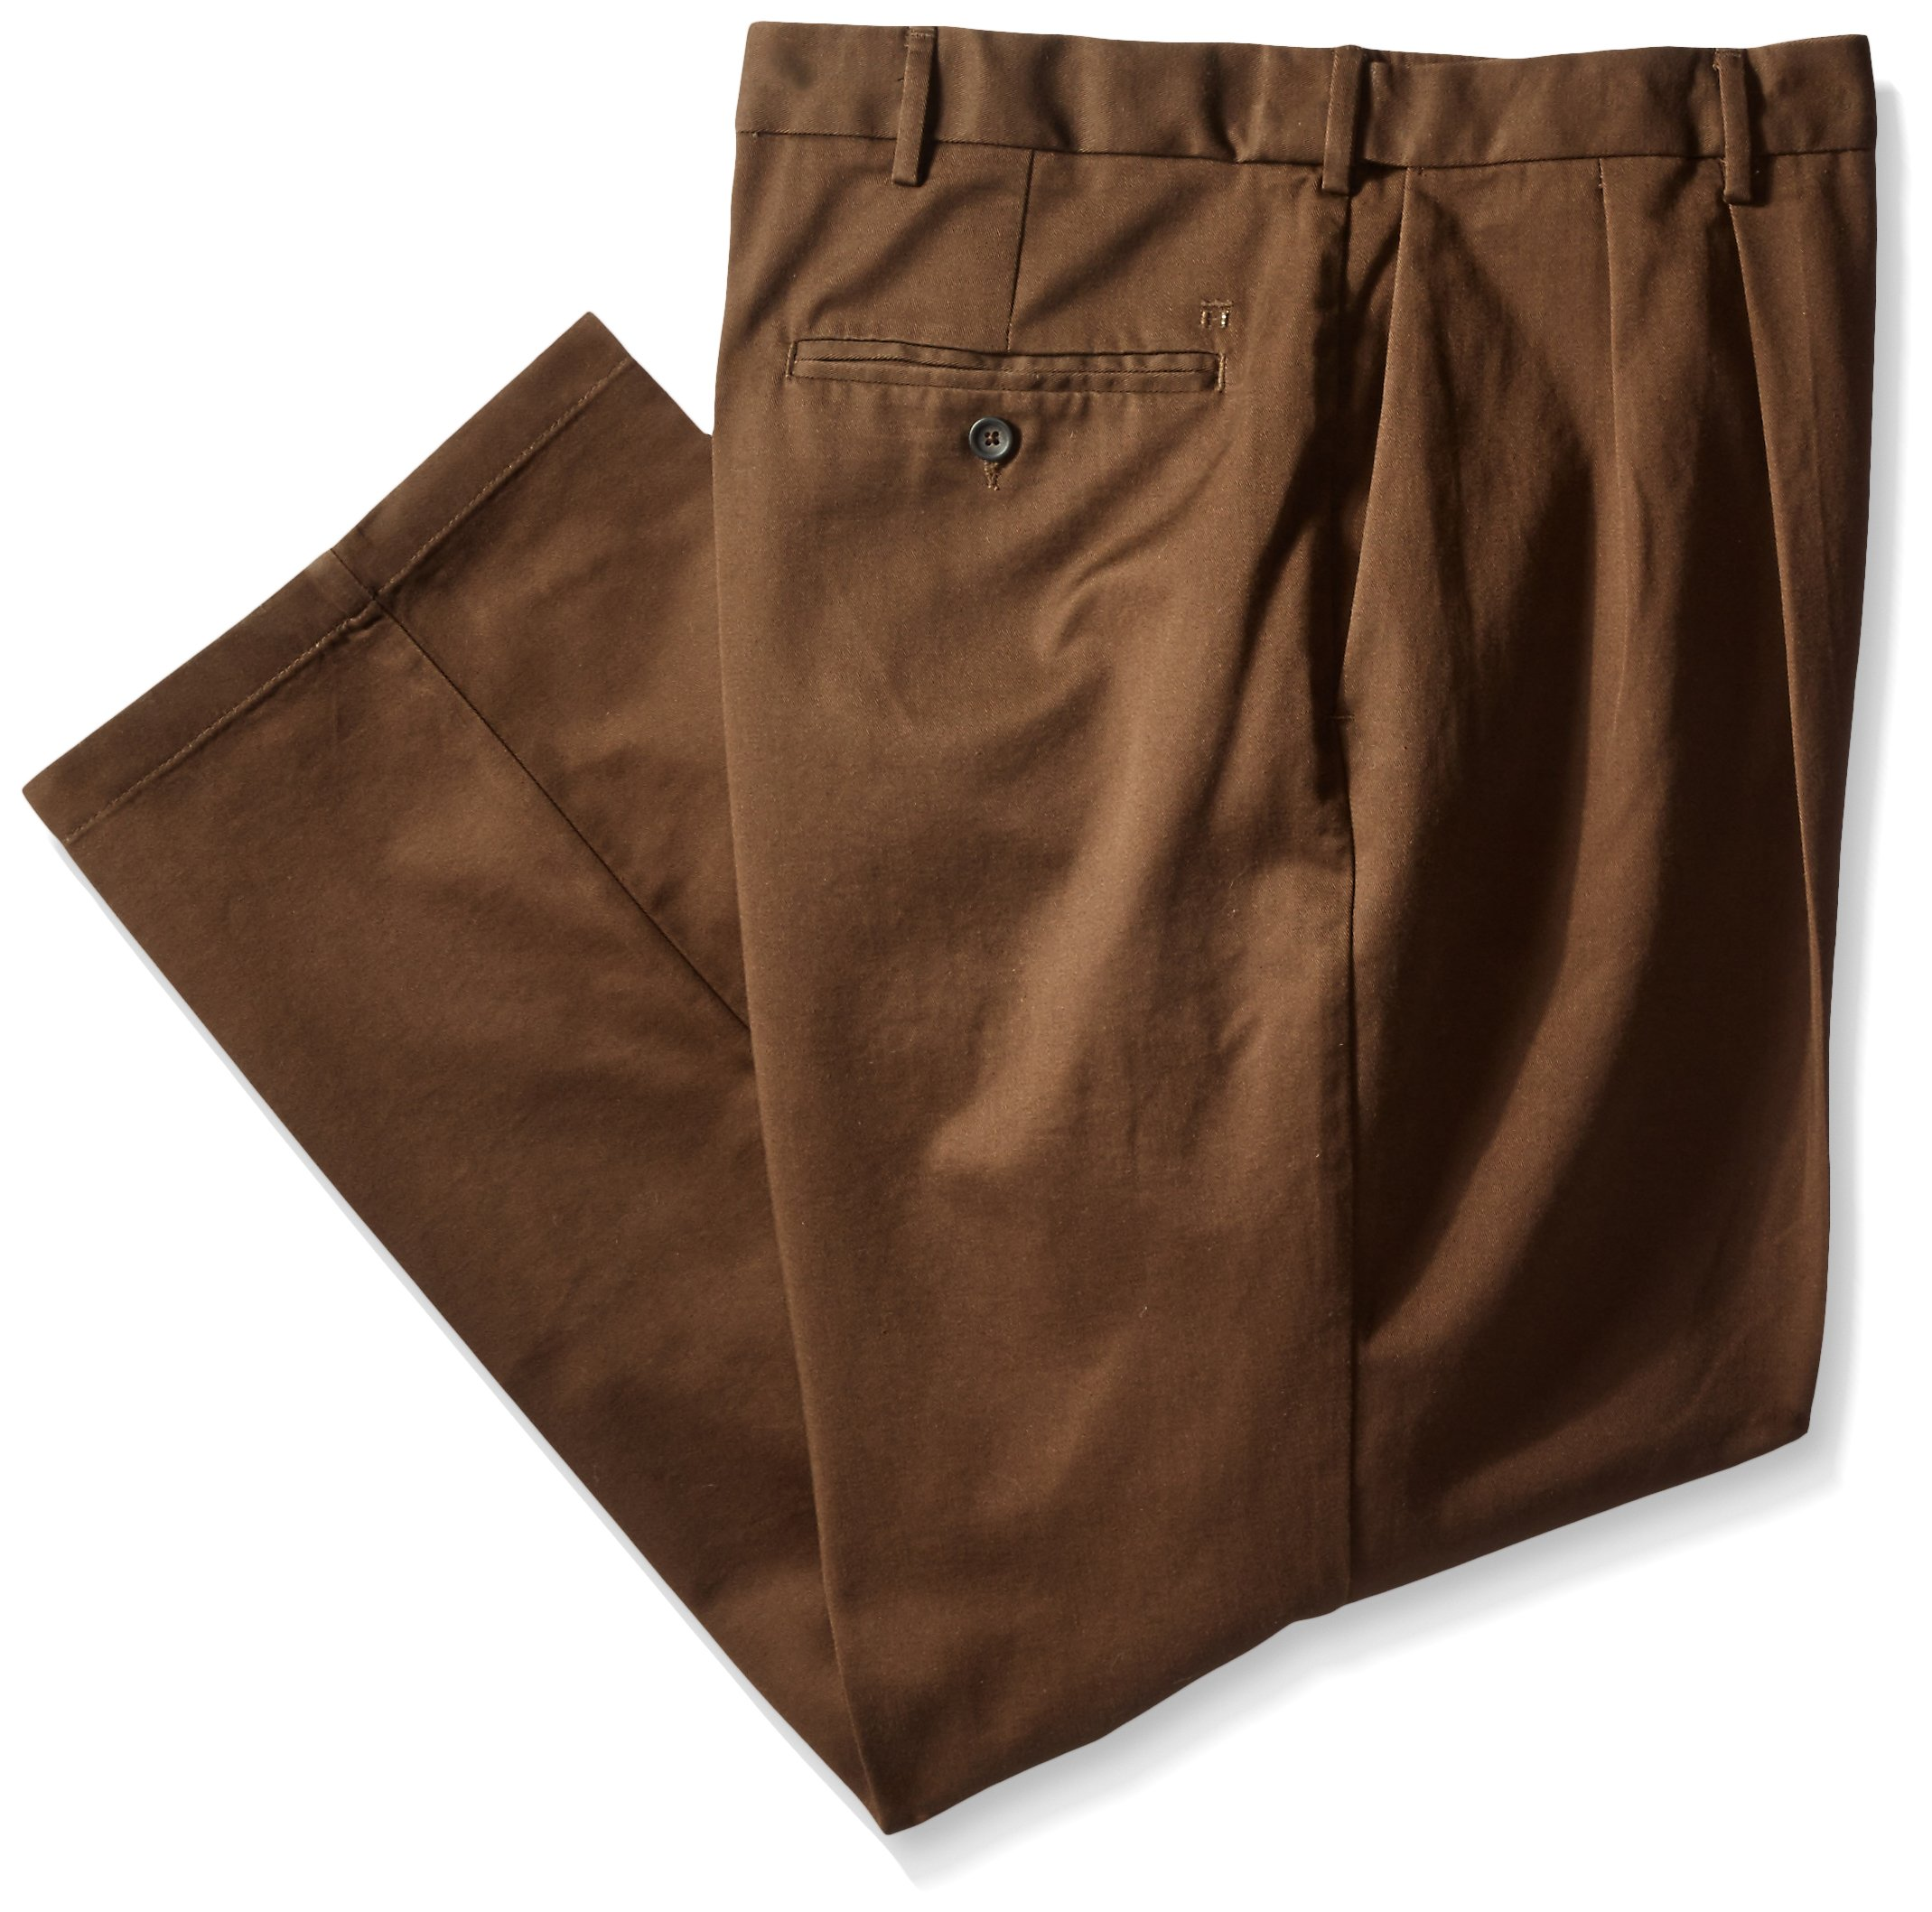 Haggar Men's Big-Tall Work To Weekend Hidden Expandable Waist Pleat Front Pant, Bean, 44x34